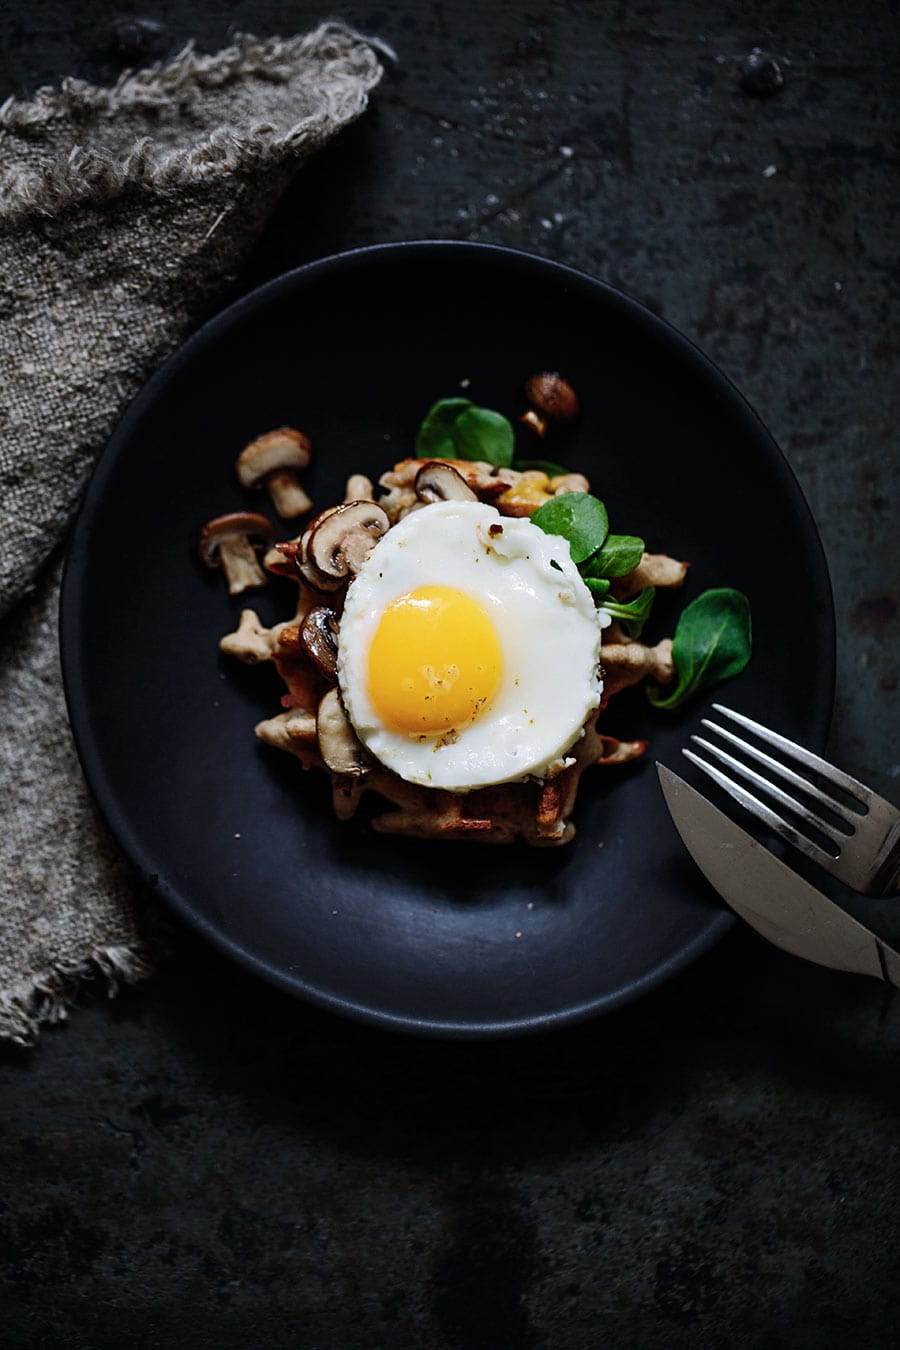 Herbal waffles with greens, champignons and fried egg by Marta Greber